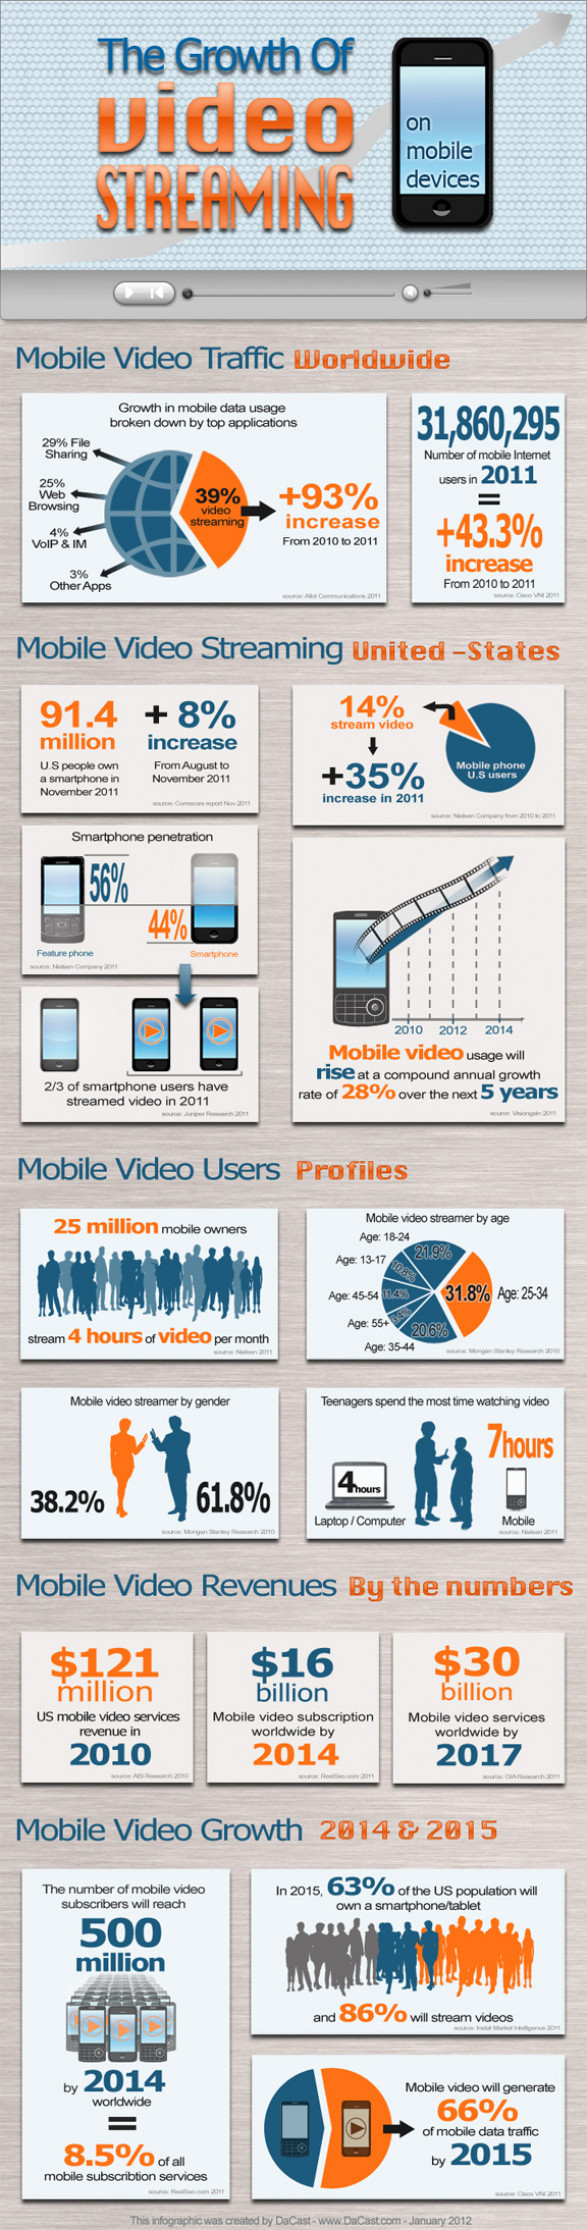 The Growth of Video Streaming